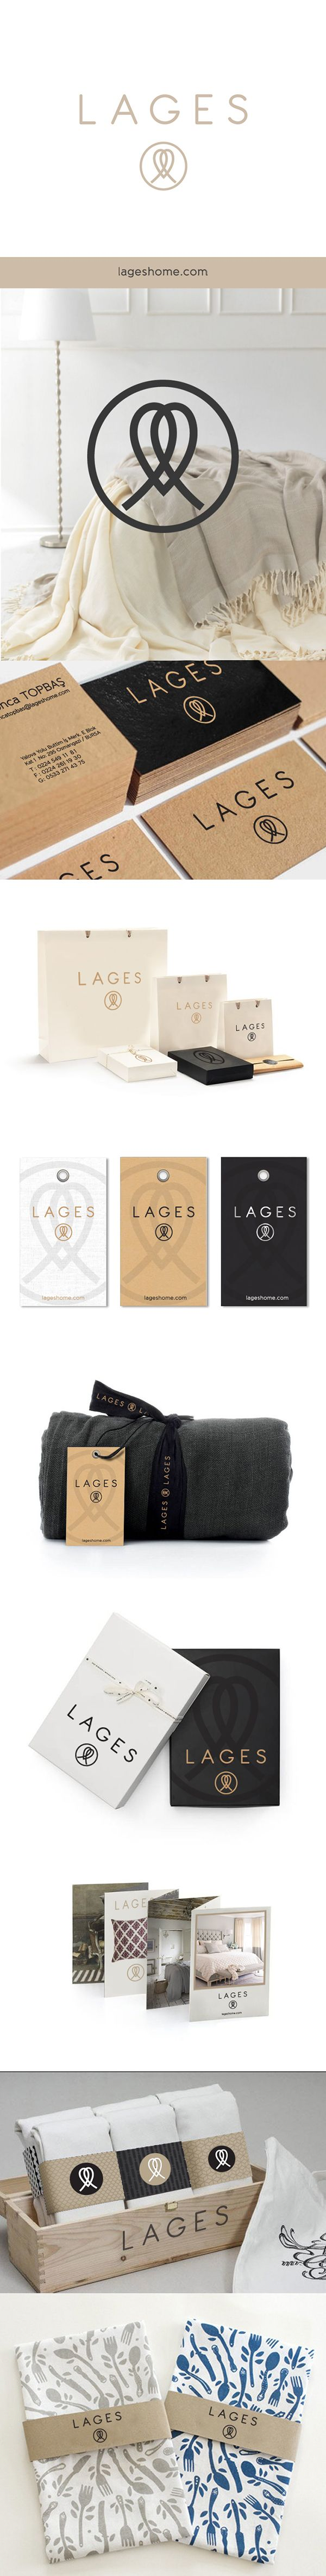 LAGES HOME on Behance by Tuğba Güler. Brand creation process and packaging of home textile products. PD